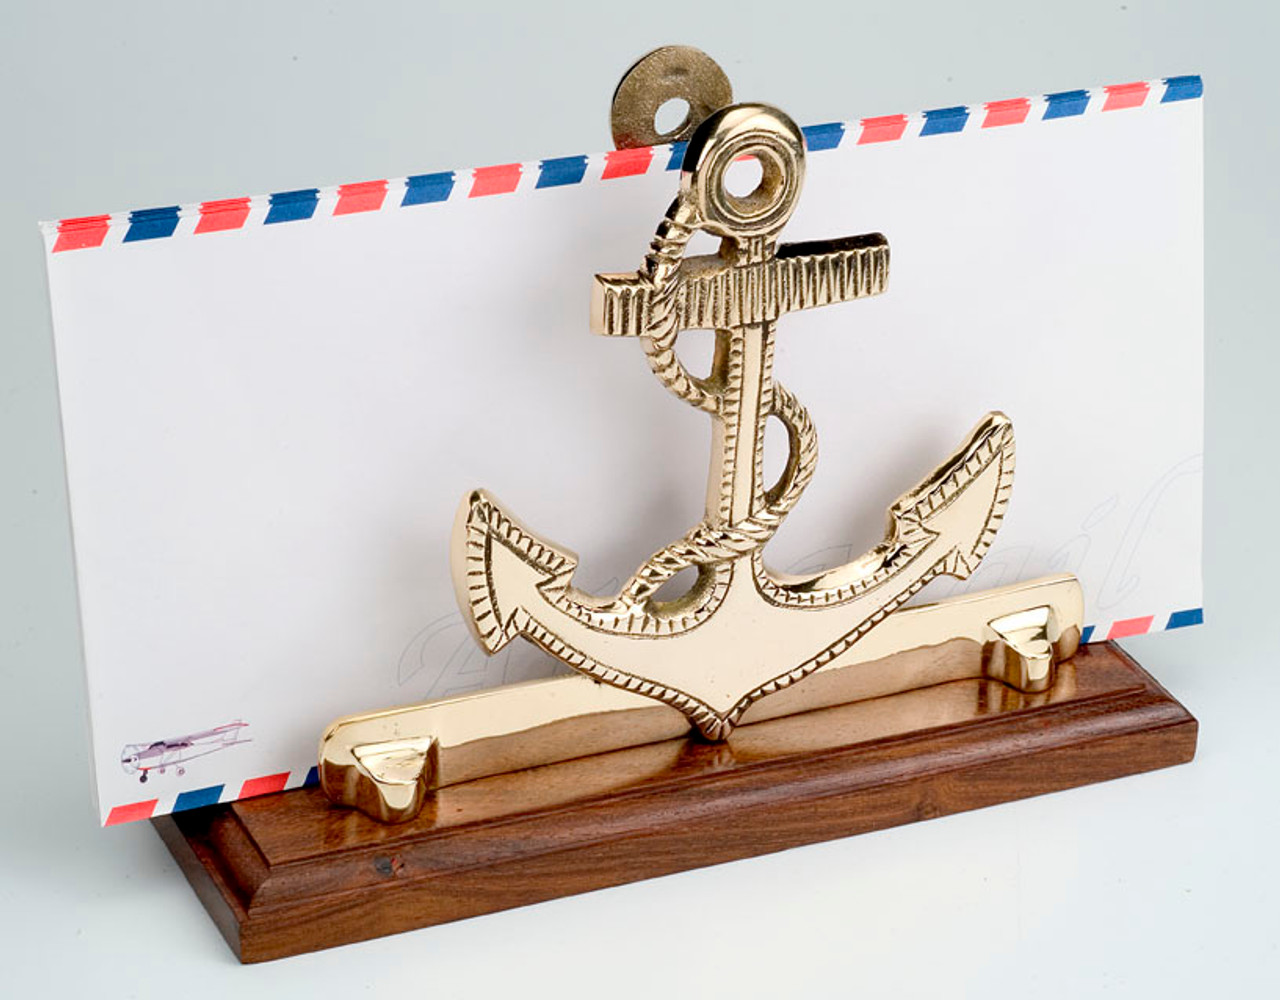 (BW-591) Polished Brass Anchor Letter Holder with Wooden Base